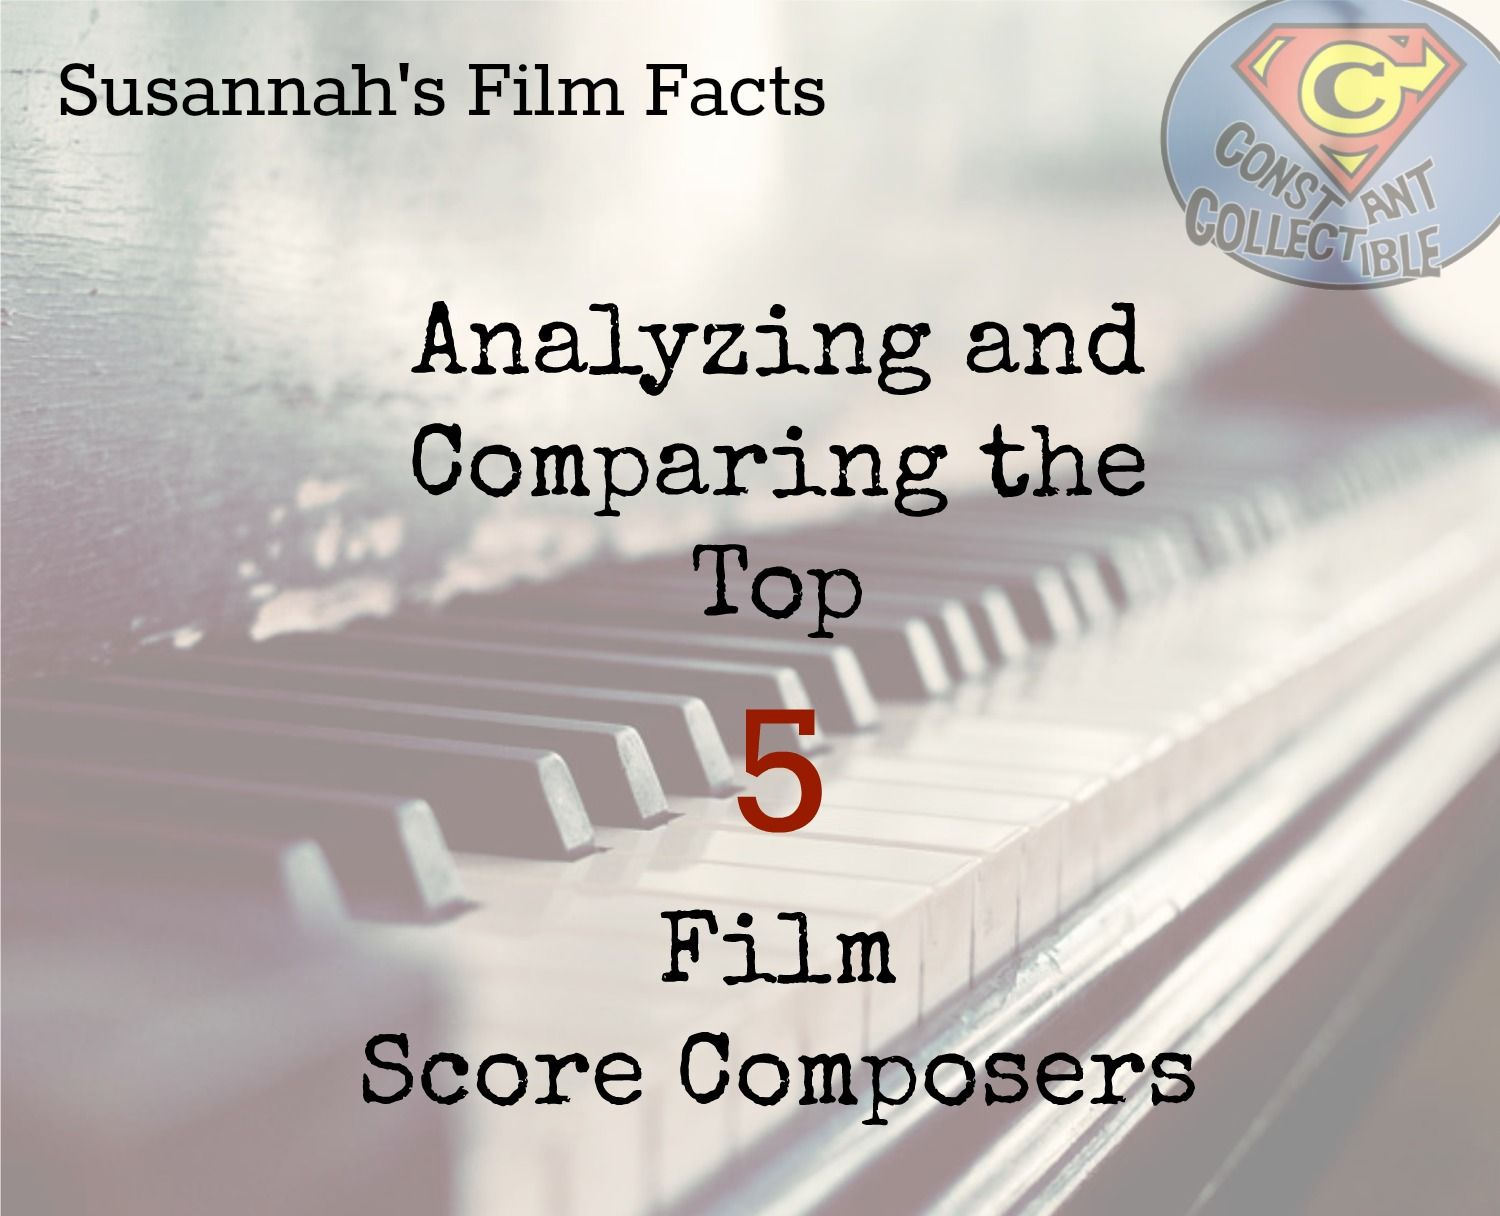 A couple months ago, I wrote a post for the Collective analyzing and comparing all the composers who have written the scores for Marvel Studios movies. This time, I decided to do something a bit bi…